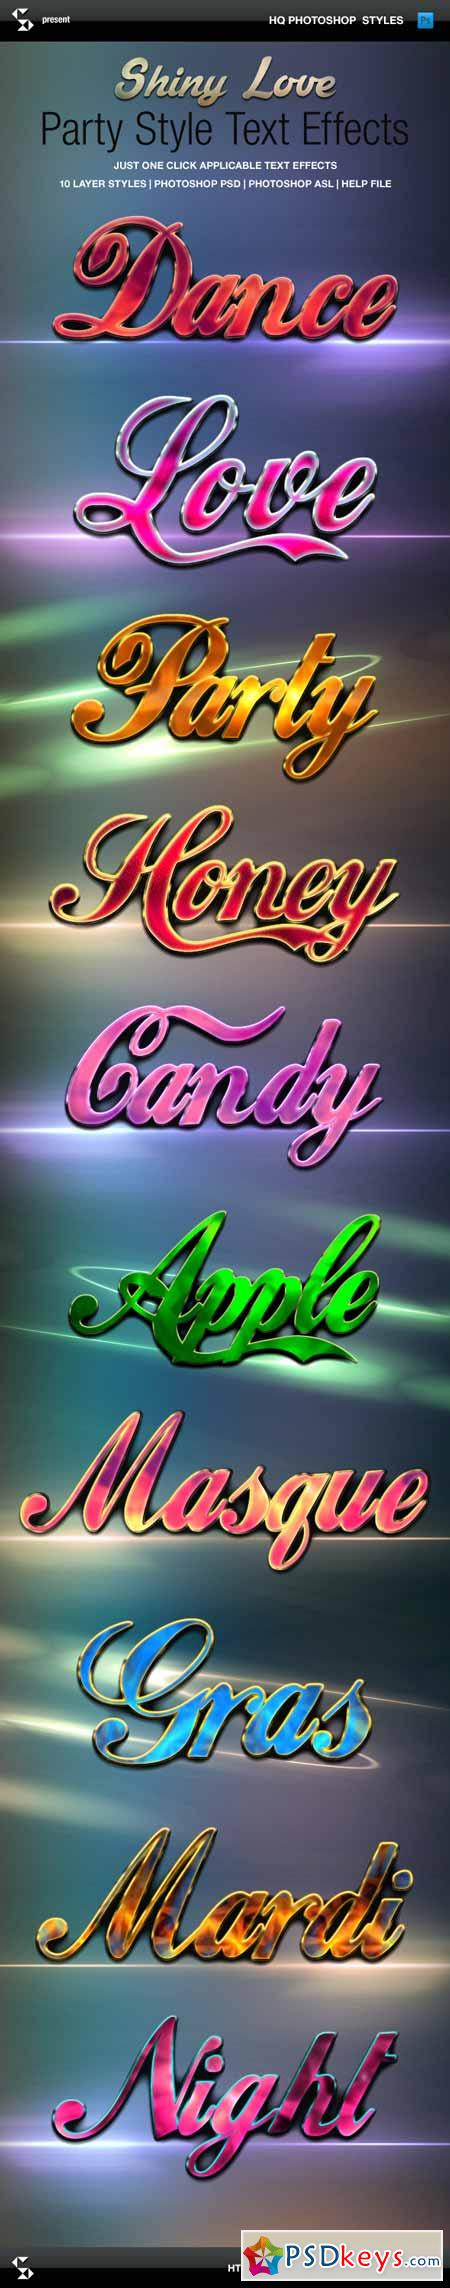 Shiny Love Party Style Text Effects 10027902